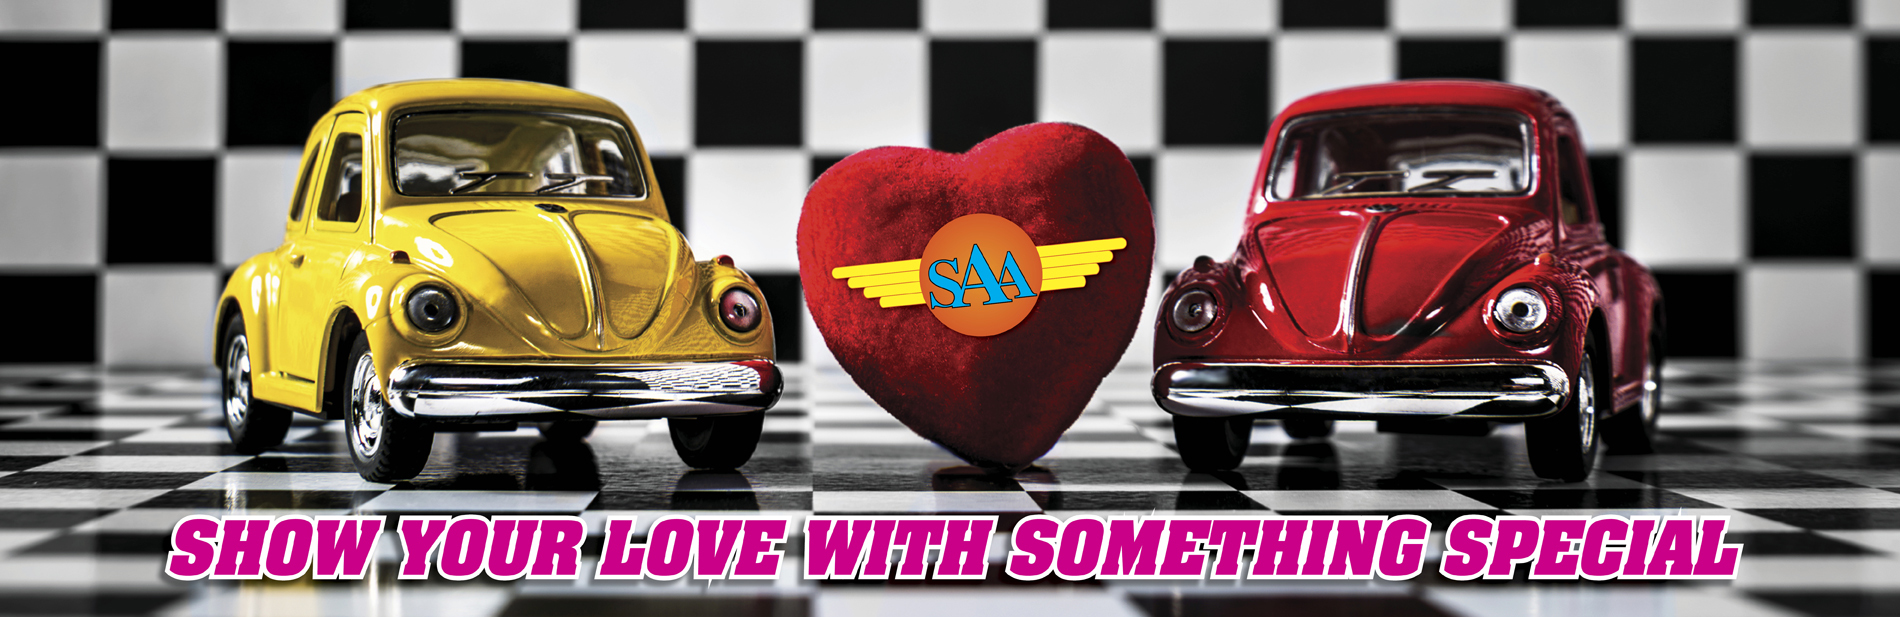 Valentine's Day is just around the corner. Give the gift of a new car.